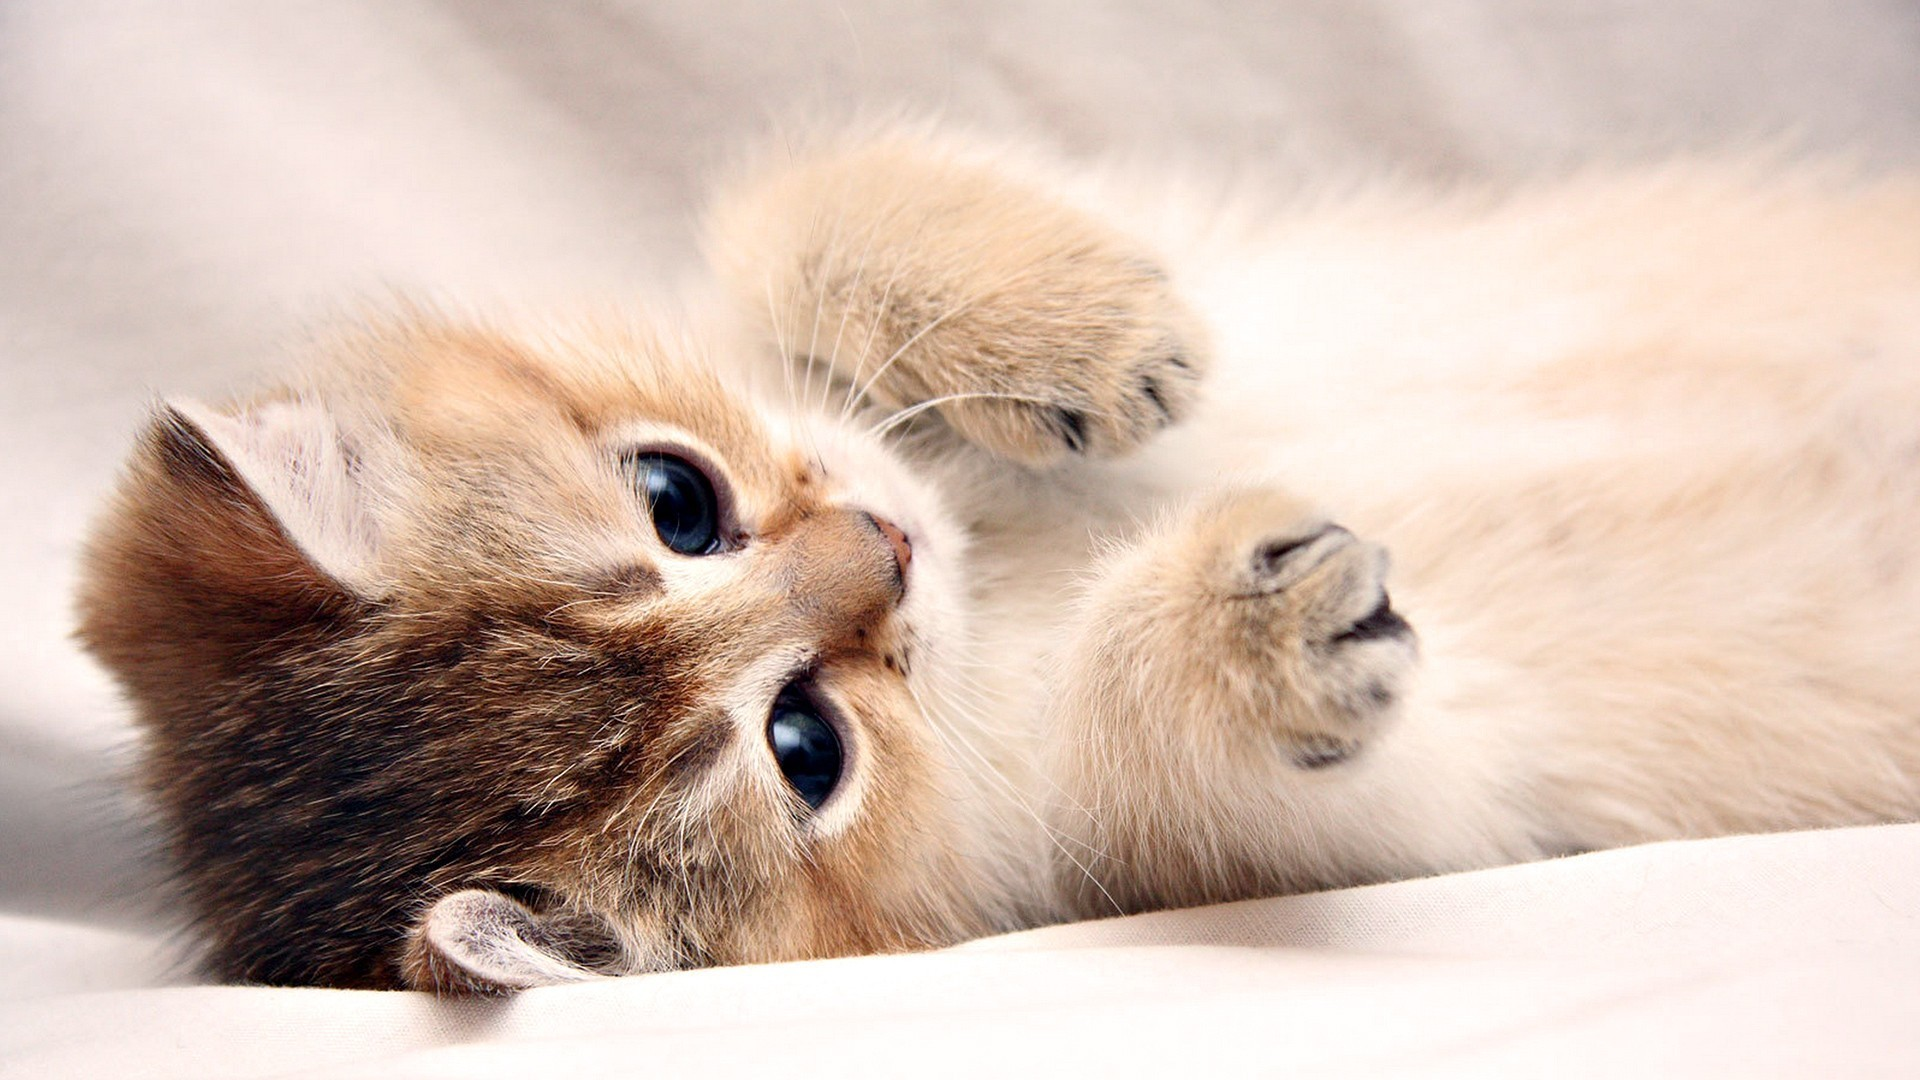 Kitten Desktop Backgrounds   Wallpaper High Definition High Quality 1920x1080